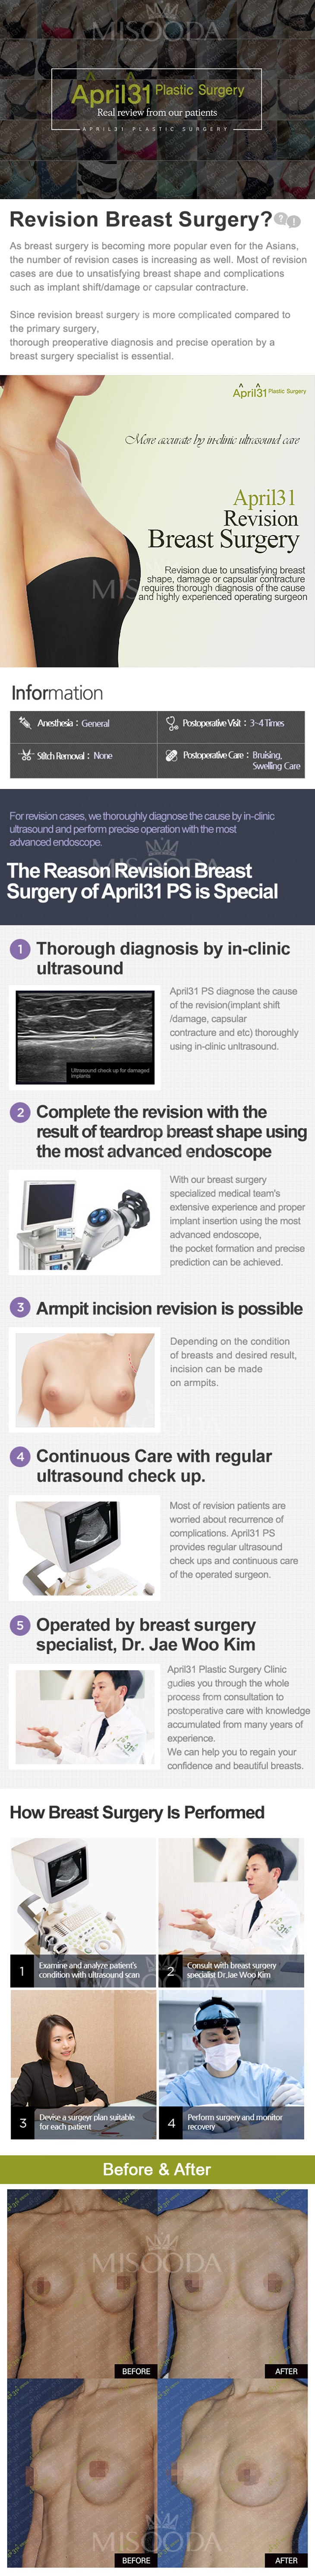 April 31 : Revision Breast Surgery